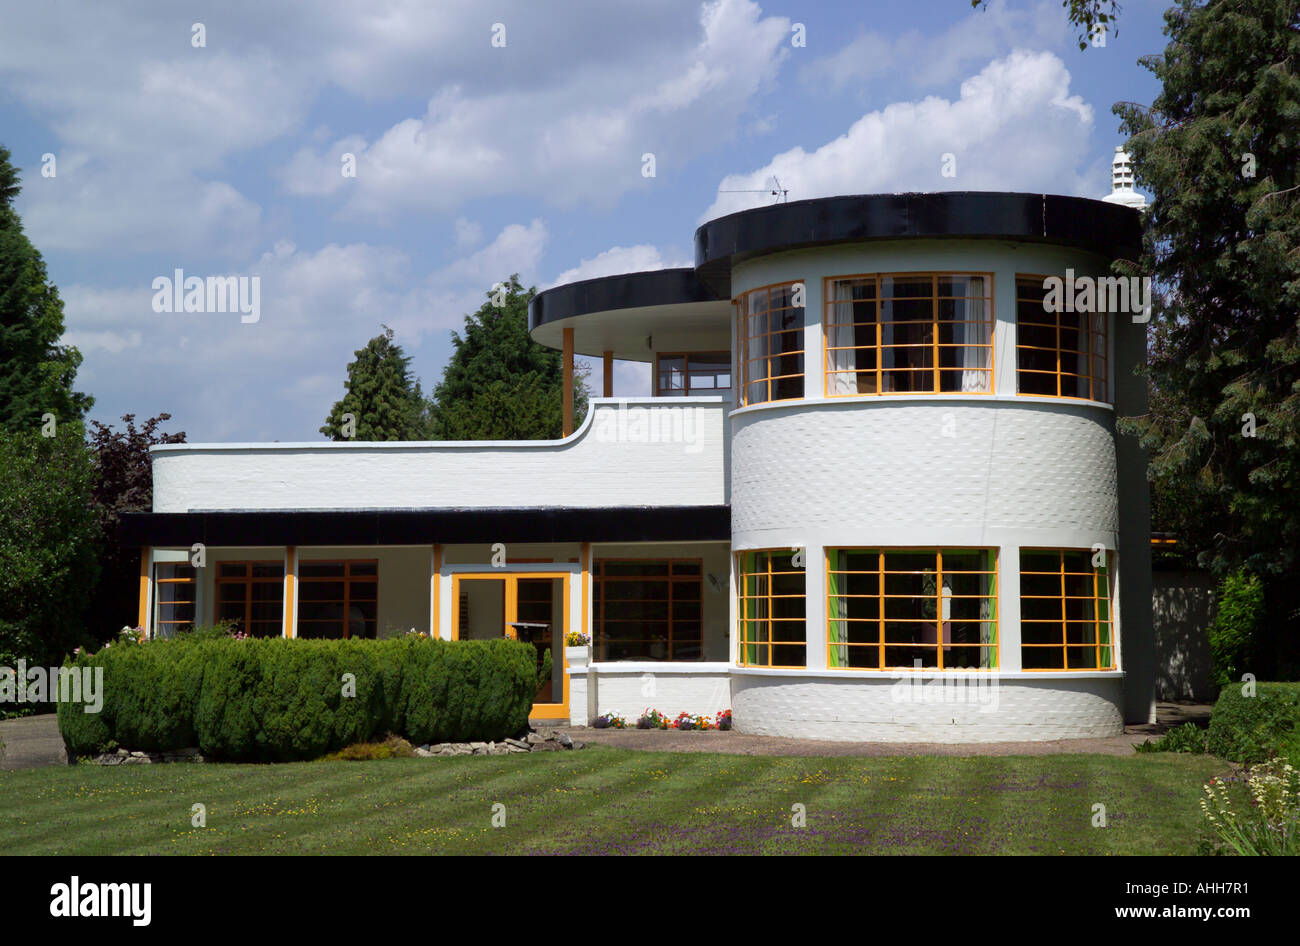 The sun house in cambridge uk a grade 2 listed home in for Art deco house design